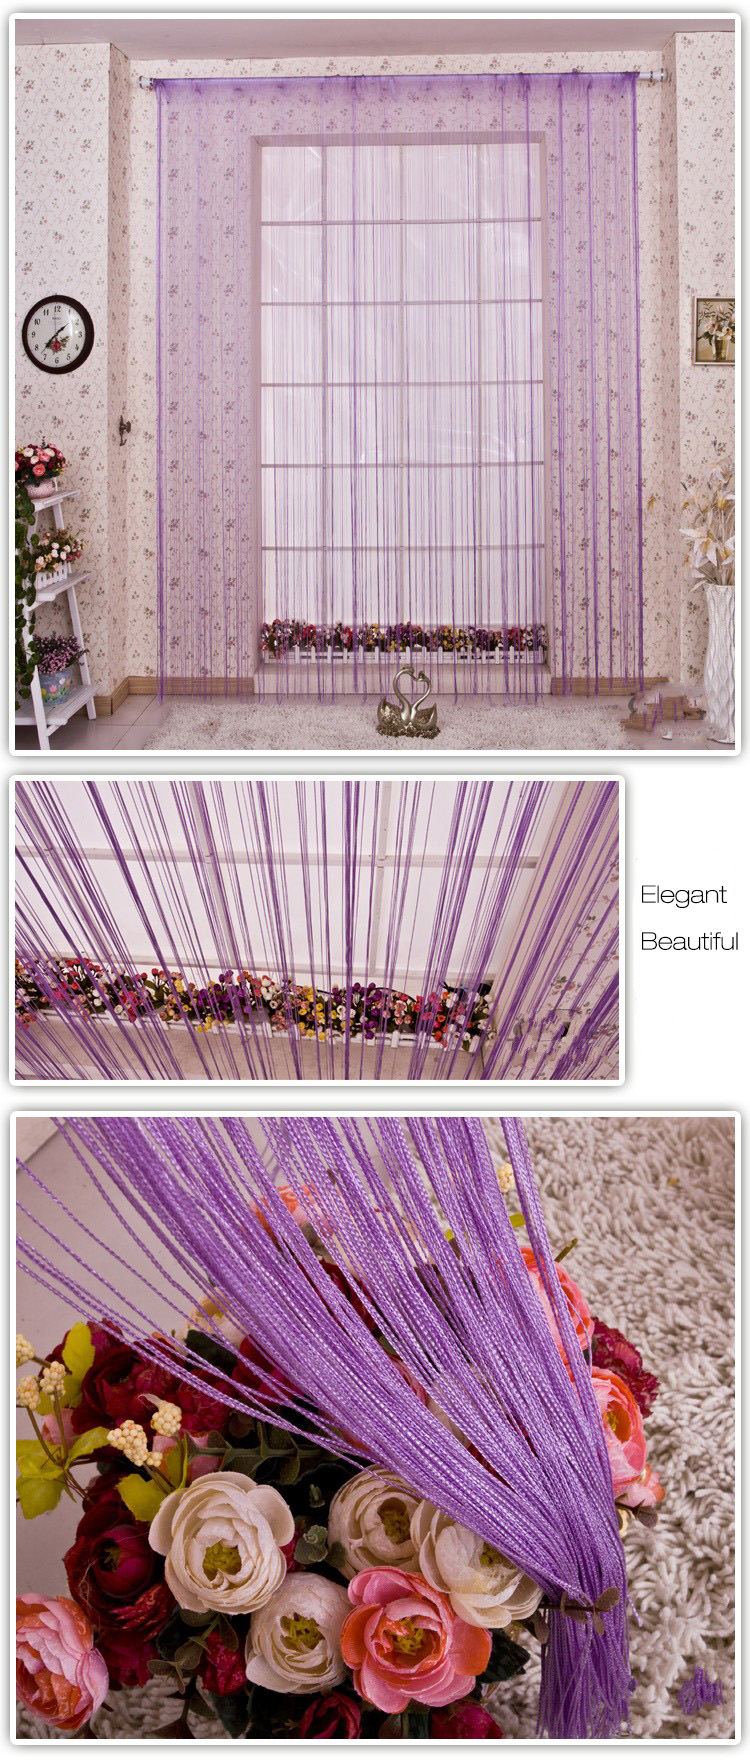 Honana WX-C5 1mx2m String Curtains Door Window Panel Divider Yarn Line Tassel Curtaion Drape Home Decor